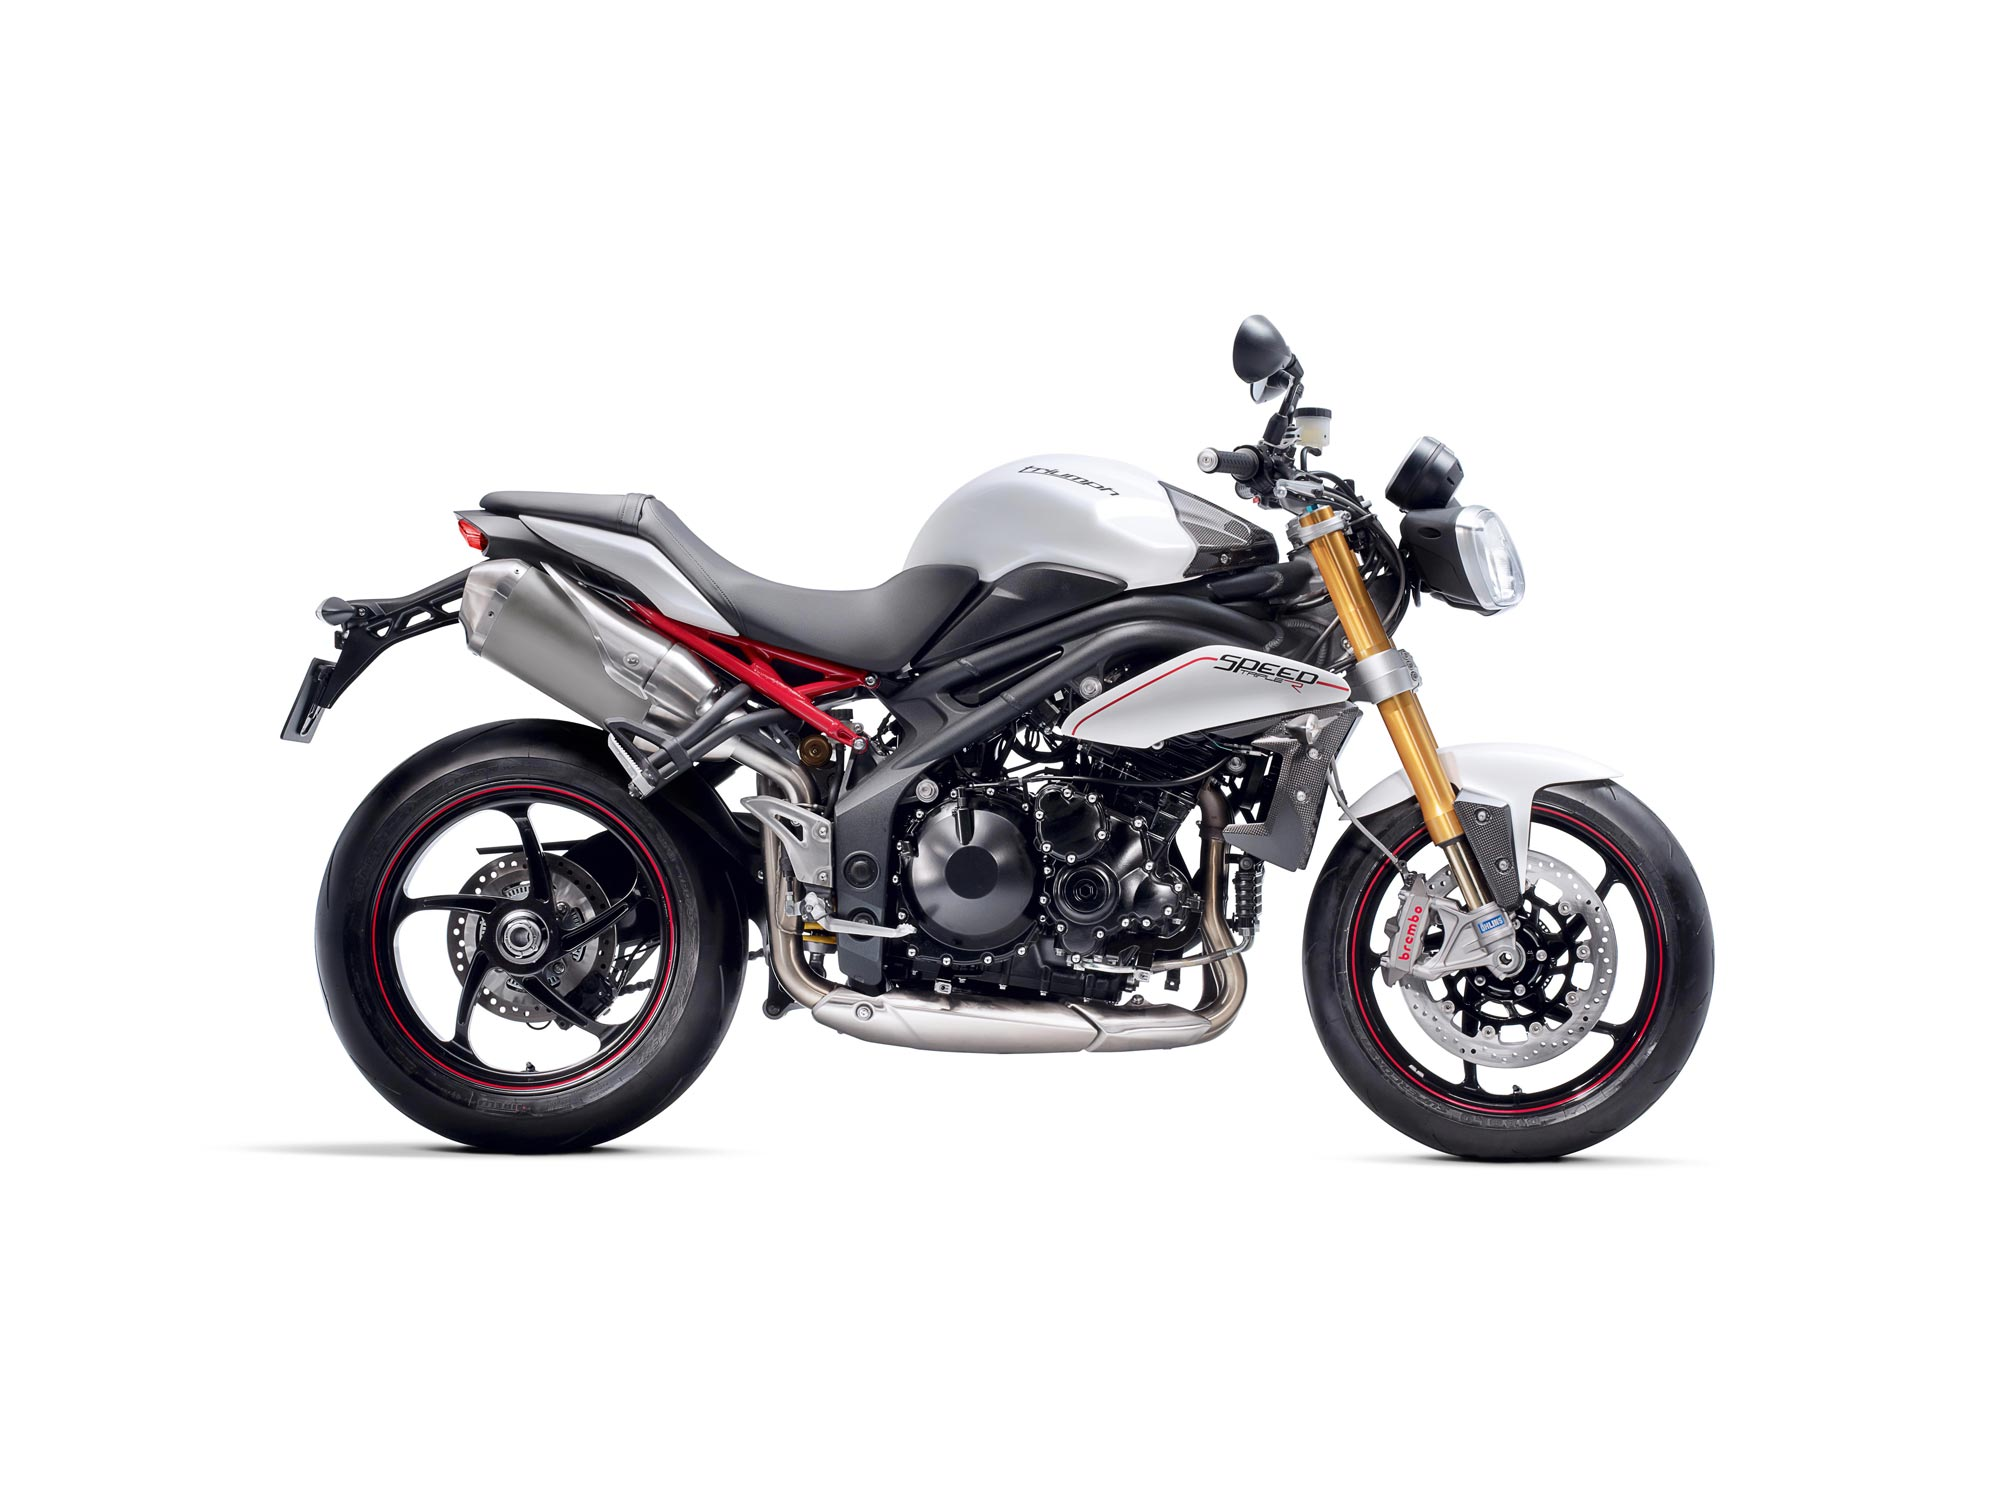 2012 triumph speed triple r adds hlins brembo pvm asphalt rubber. Black Bedroom Furniture Sets. Home Design Ideas